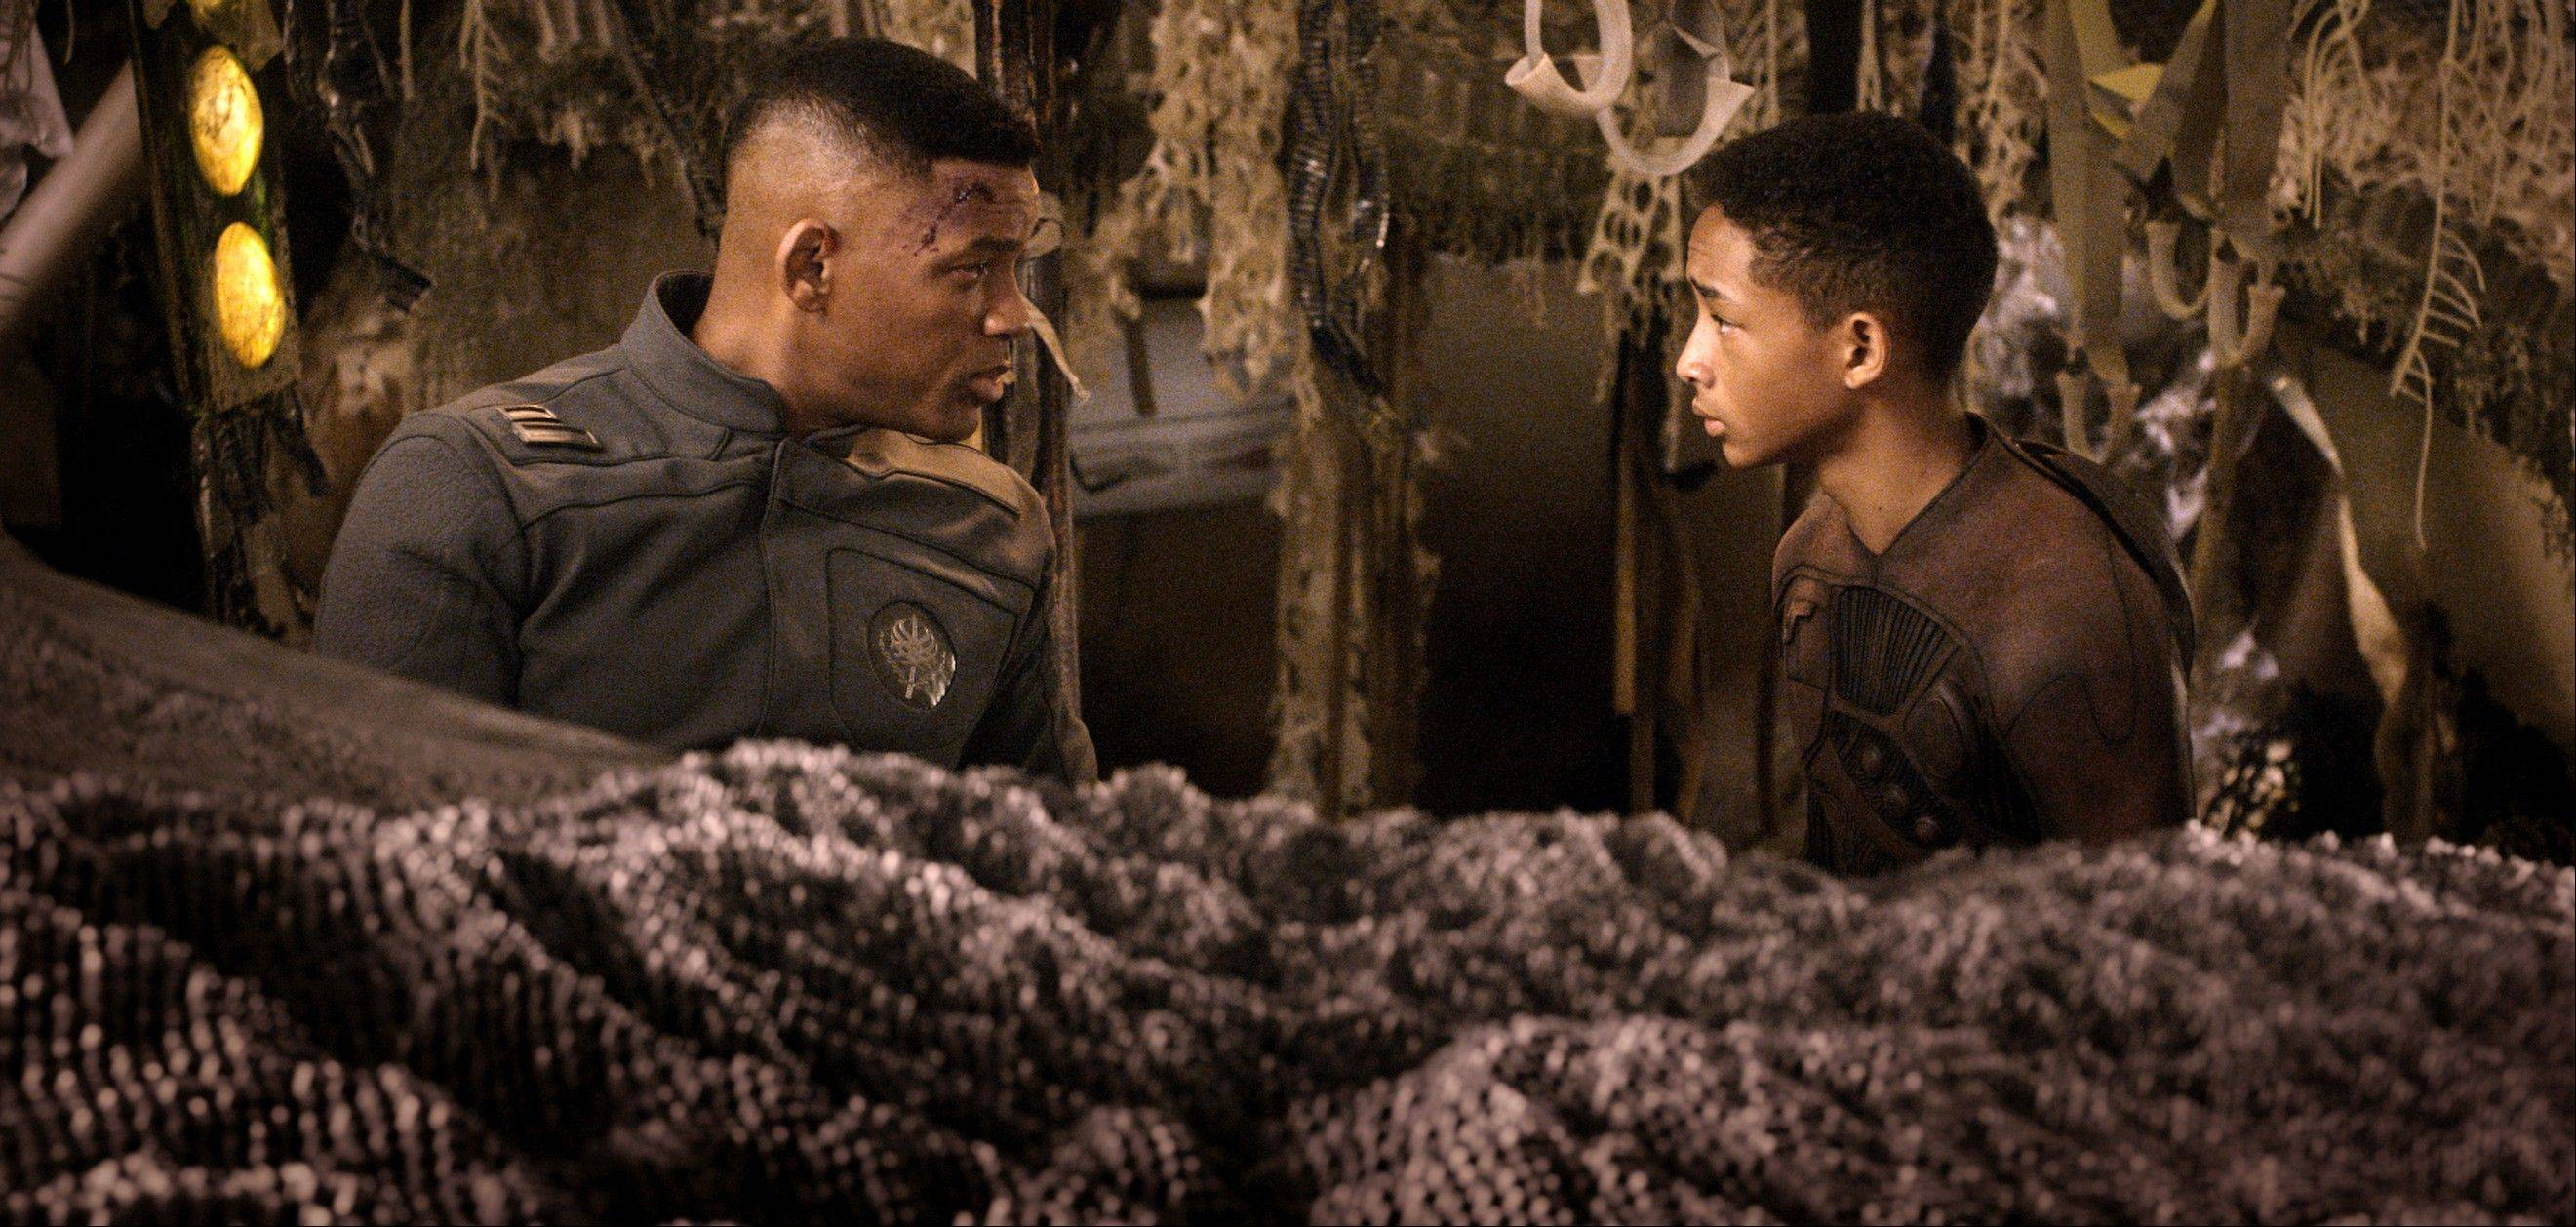 This film publicity image released by Sony - Columbia Pictures shows Will Smith, left, and Jaden Smith in a scene from �After Earth.�